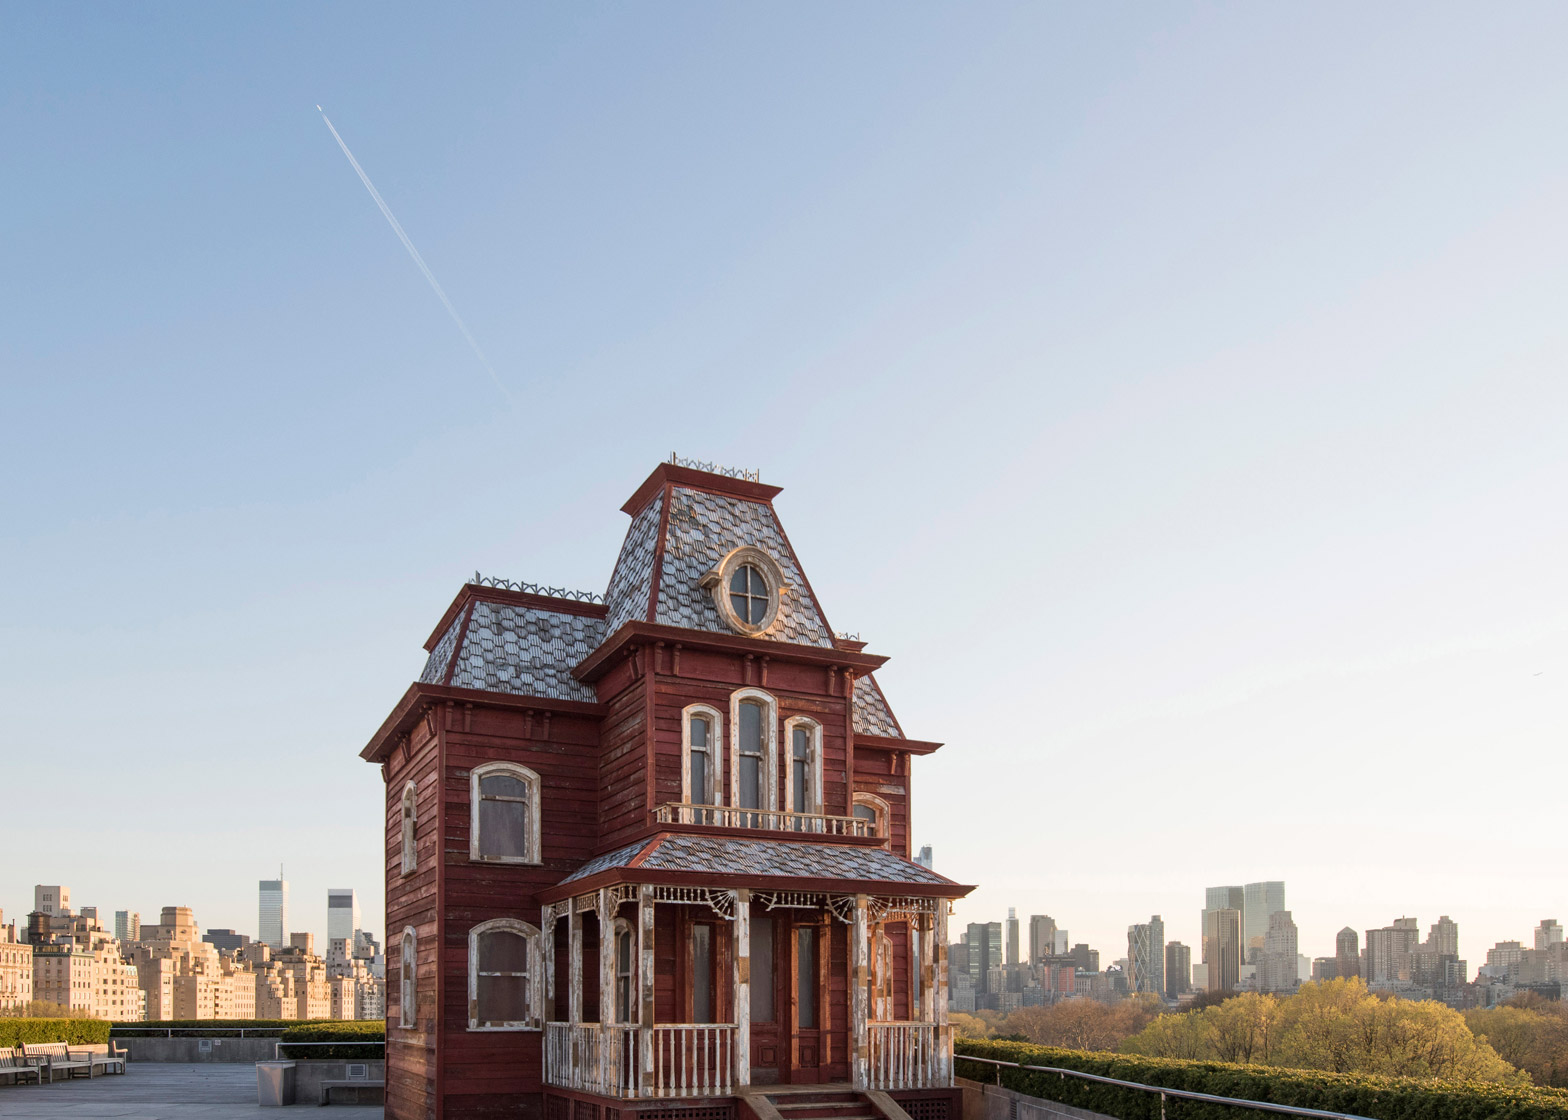 Transitional Object (PsychoBarn) by Cornelia Parker for Metropolitan Museum of Art Met roof garden installation in New York, USA